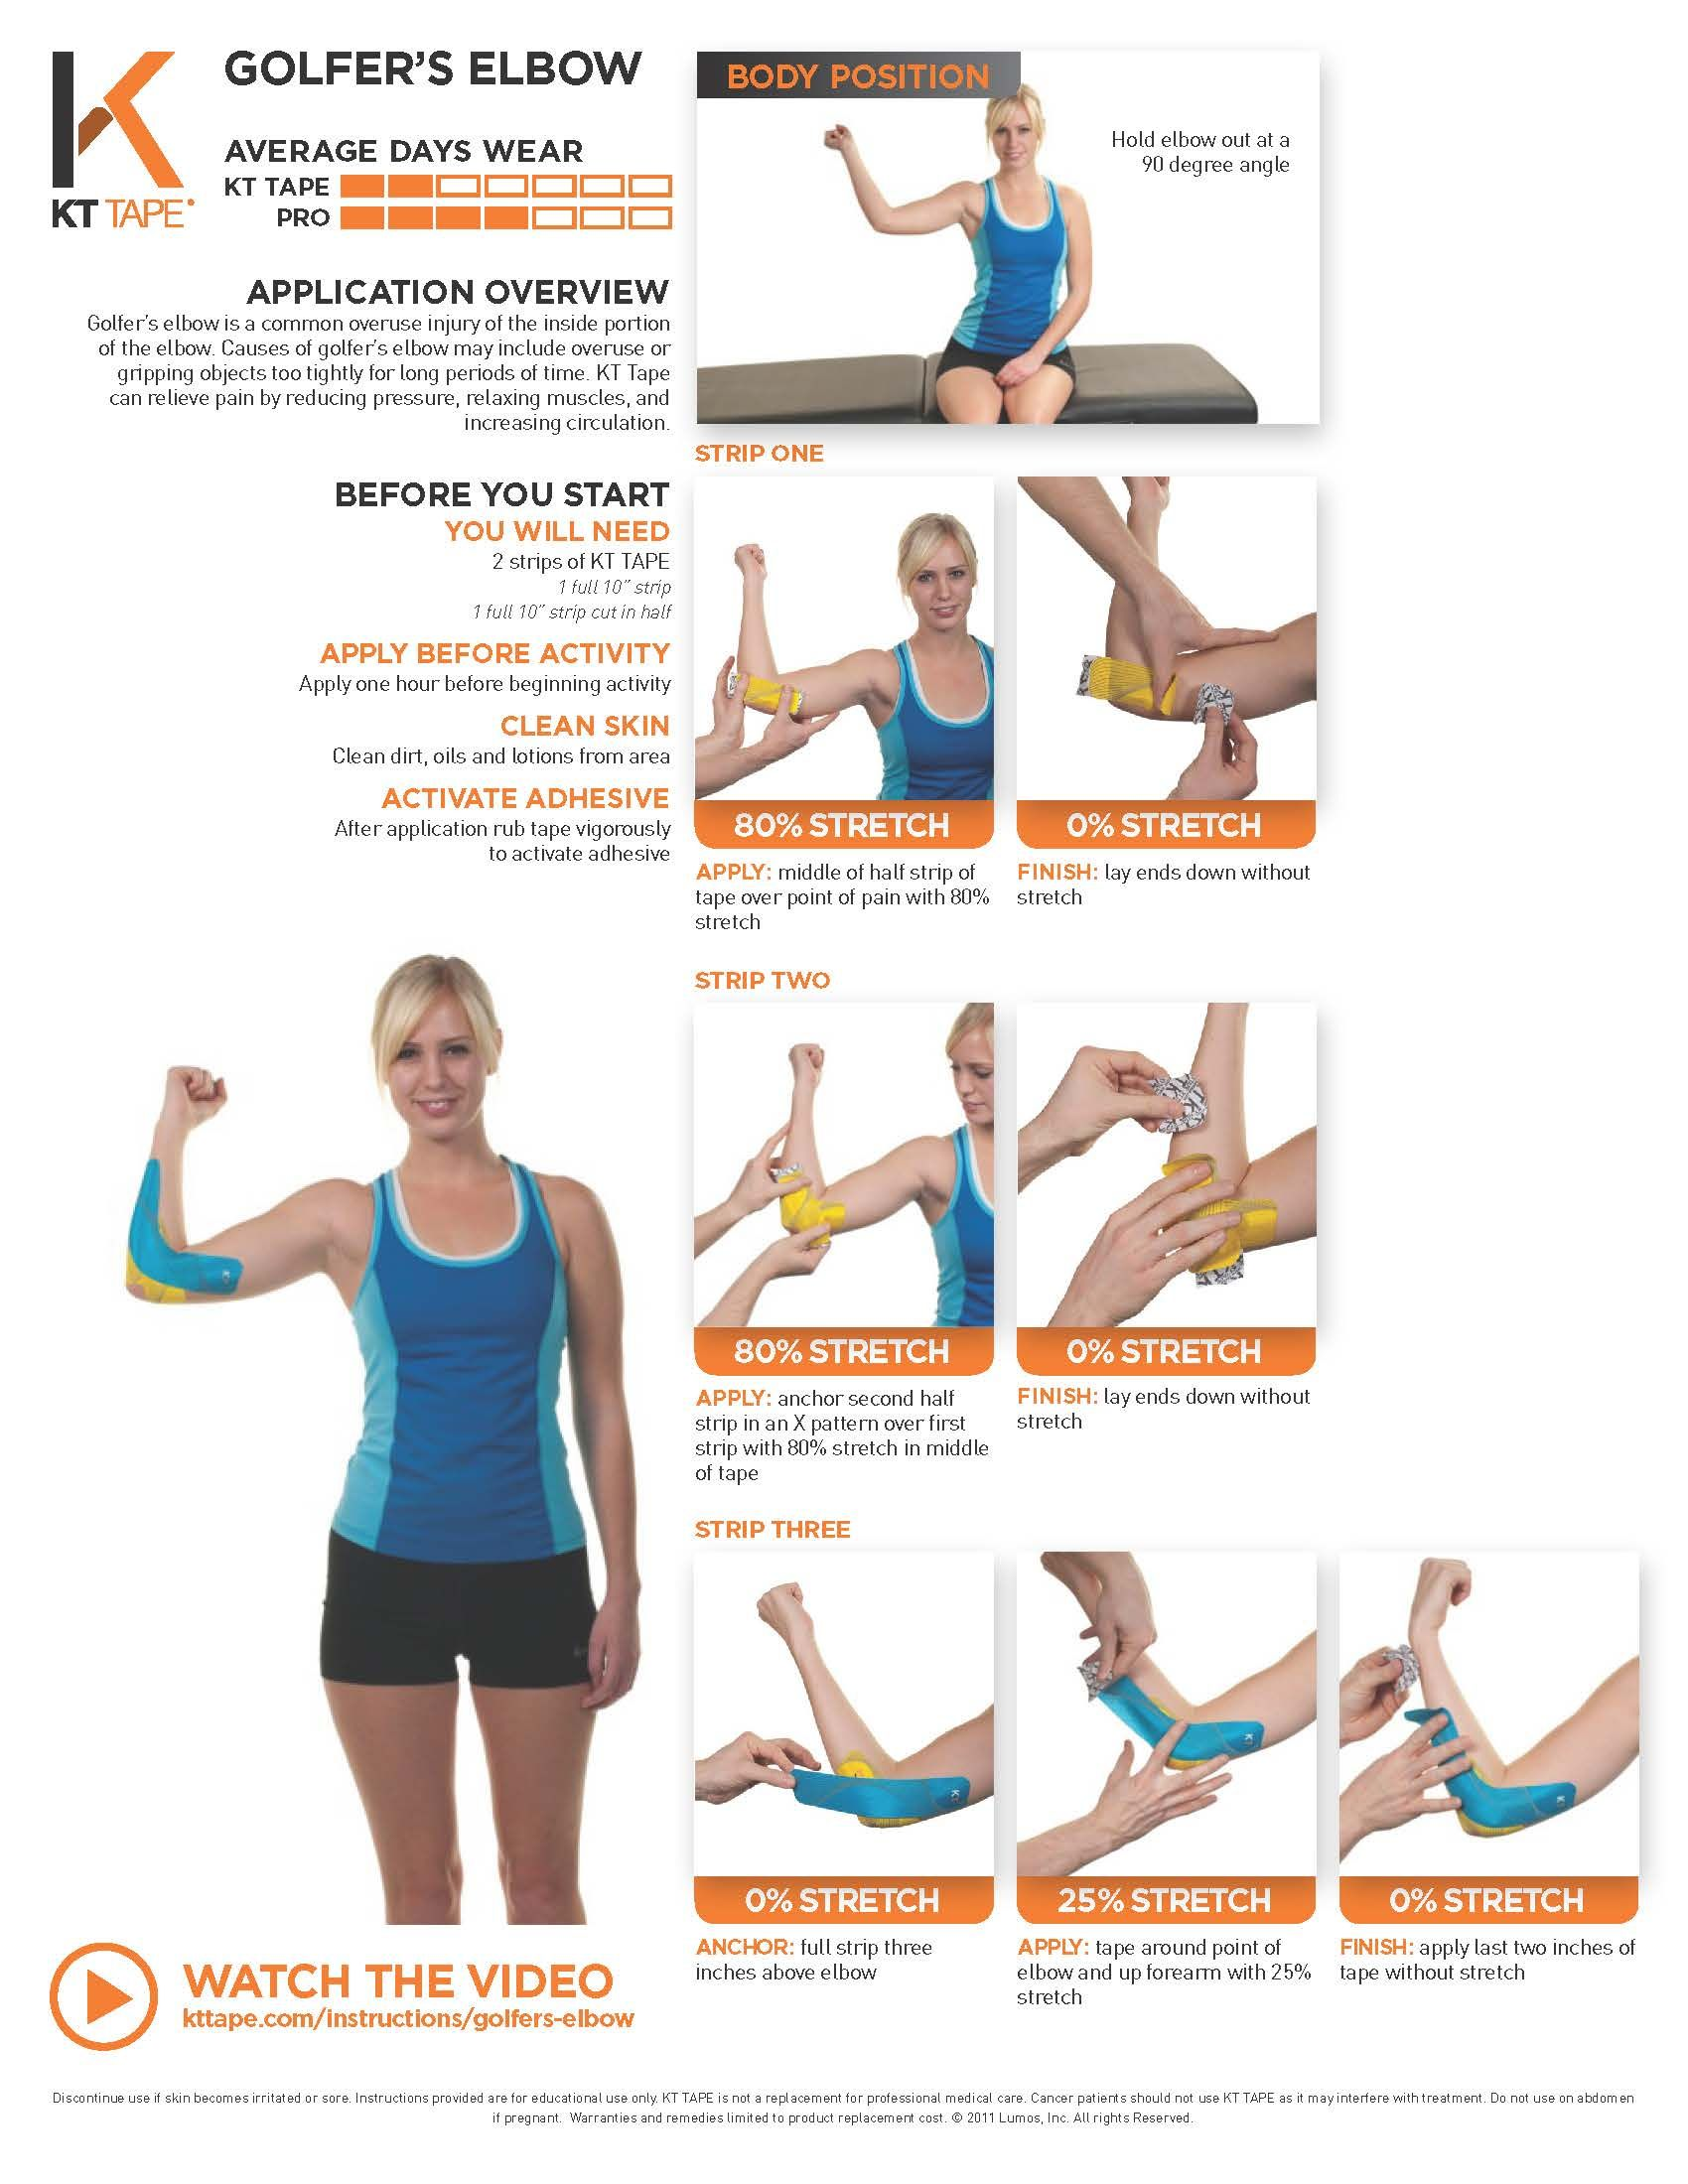 Pin on Kinesiology Tape: KT Tape